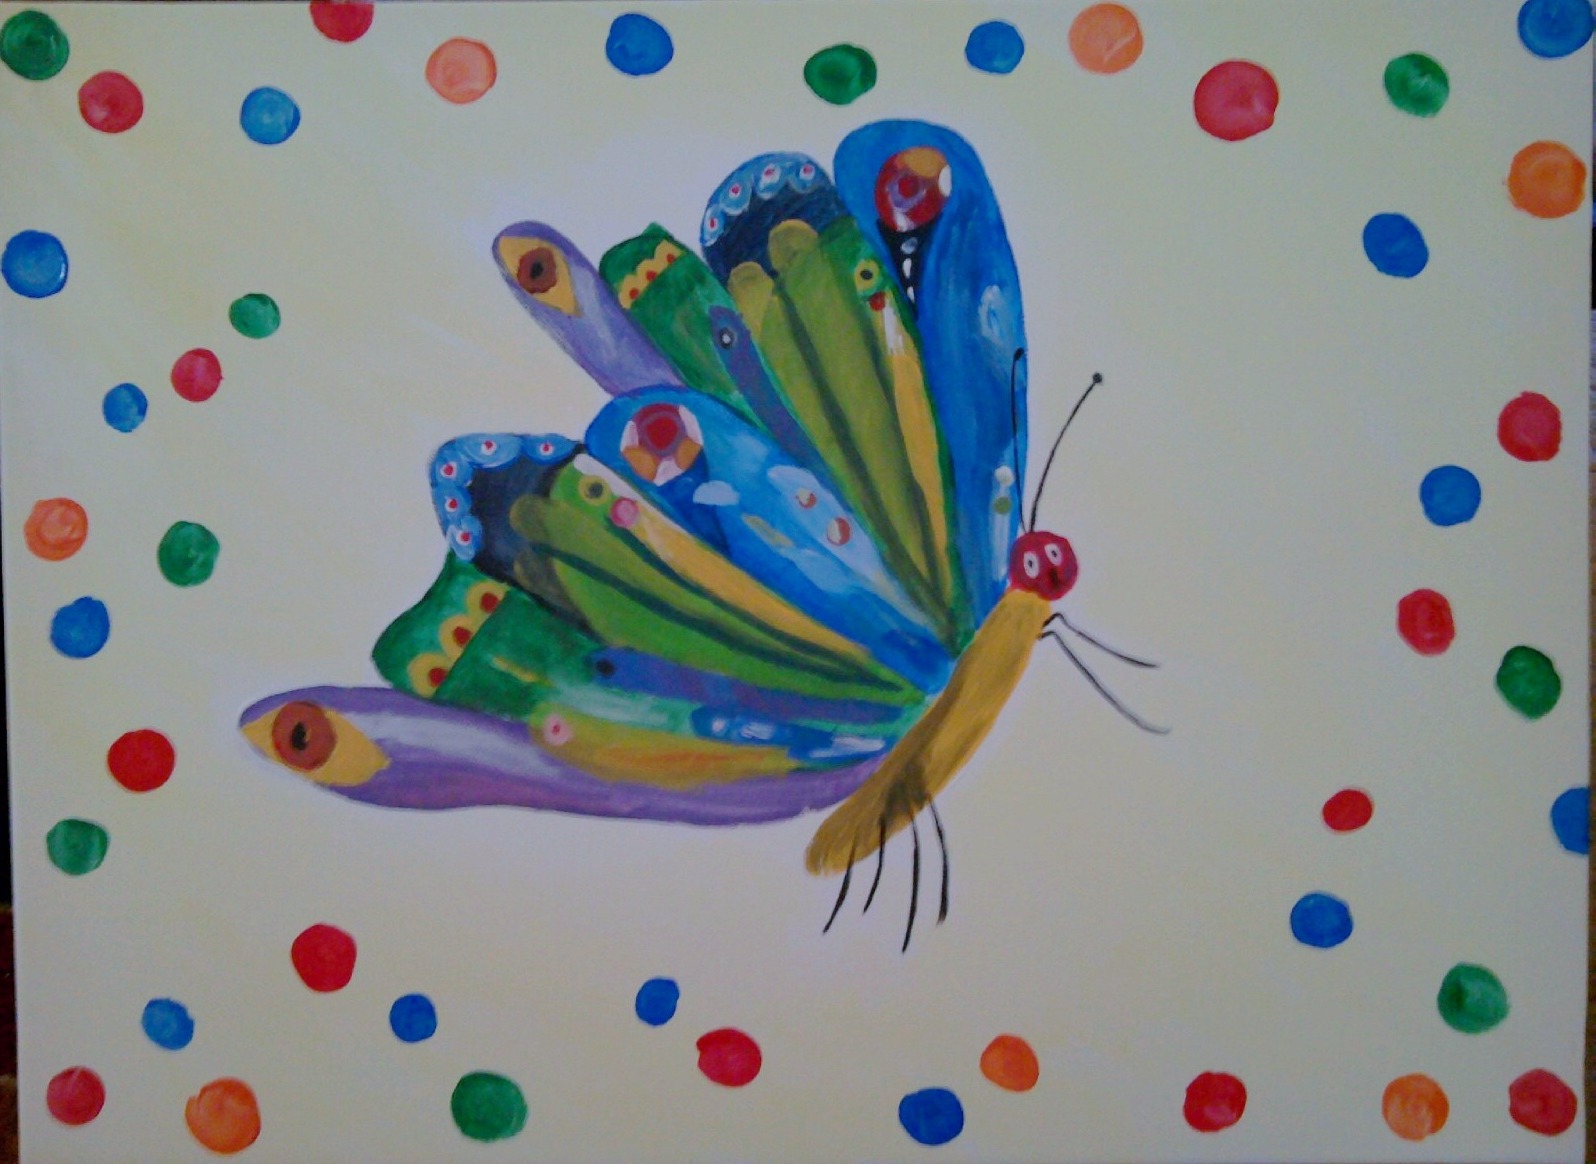 Butterfly in The Very Hungry Caterpillar